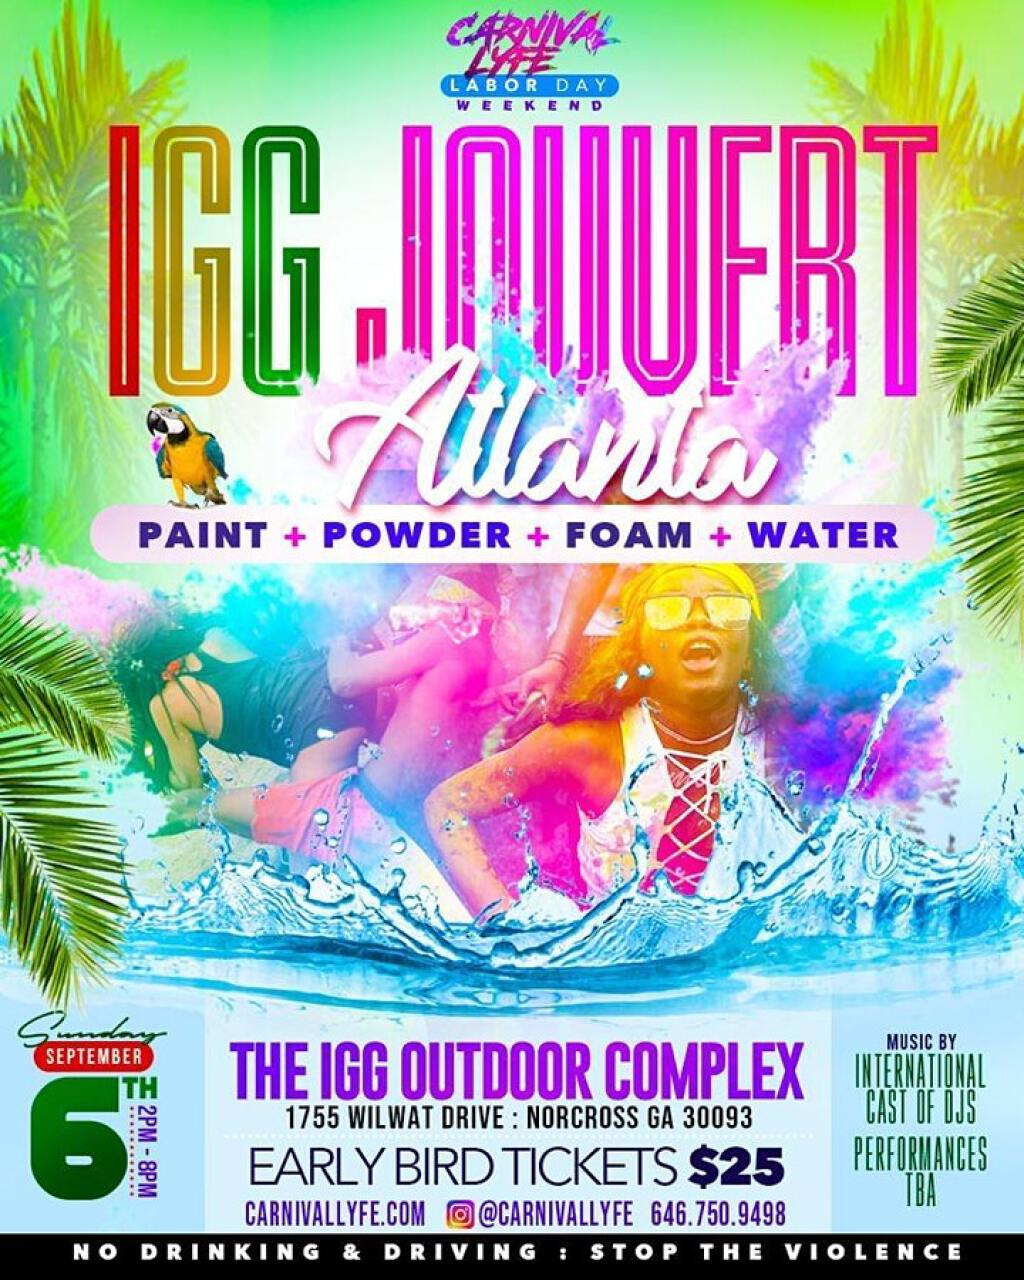 Ice Gold Green Jouvert flyer or graphic.